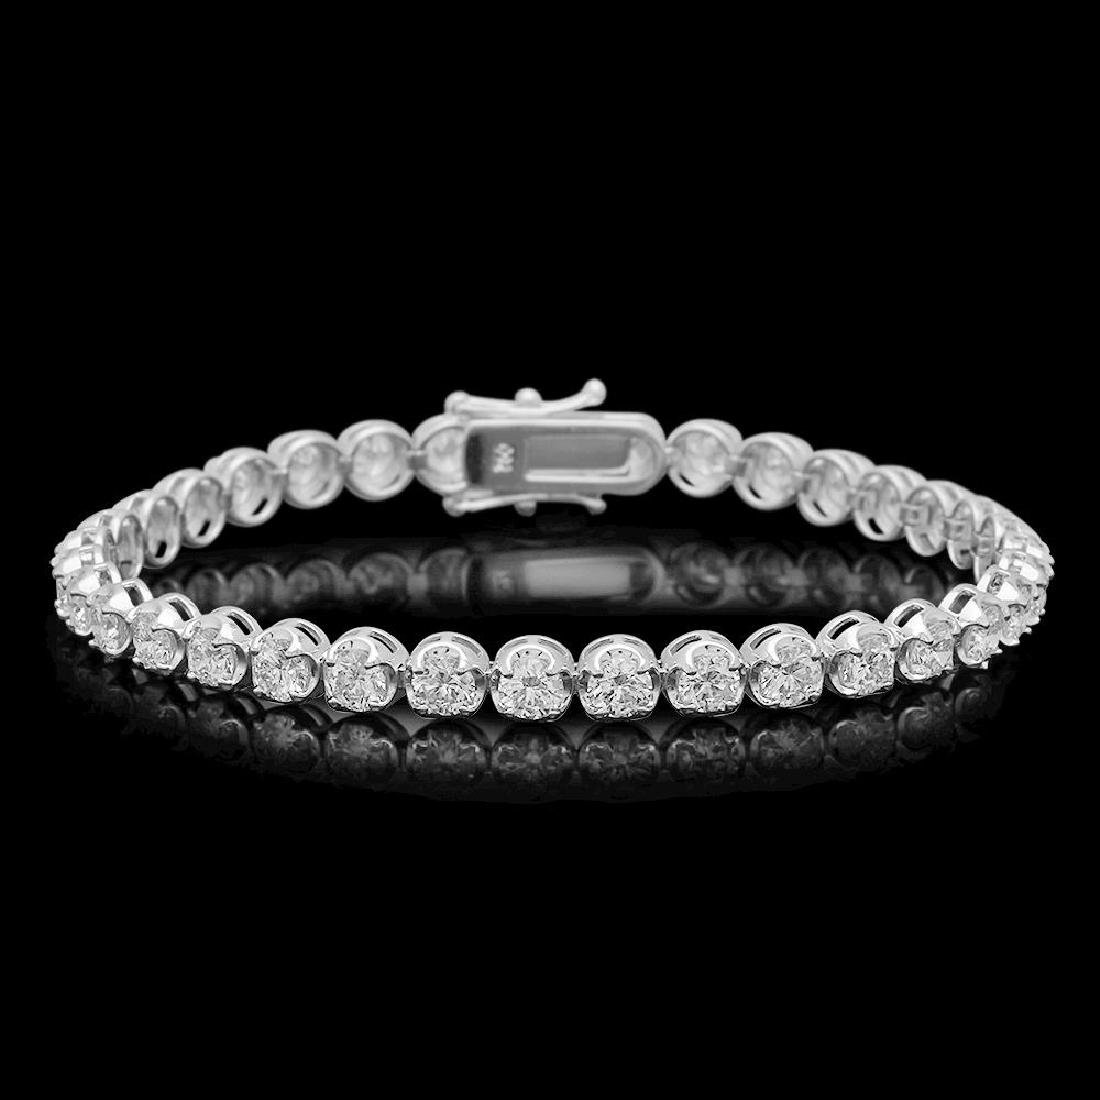 18K Gold 7.01ct Diamond Bracelet